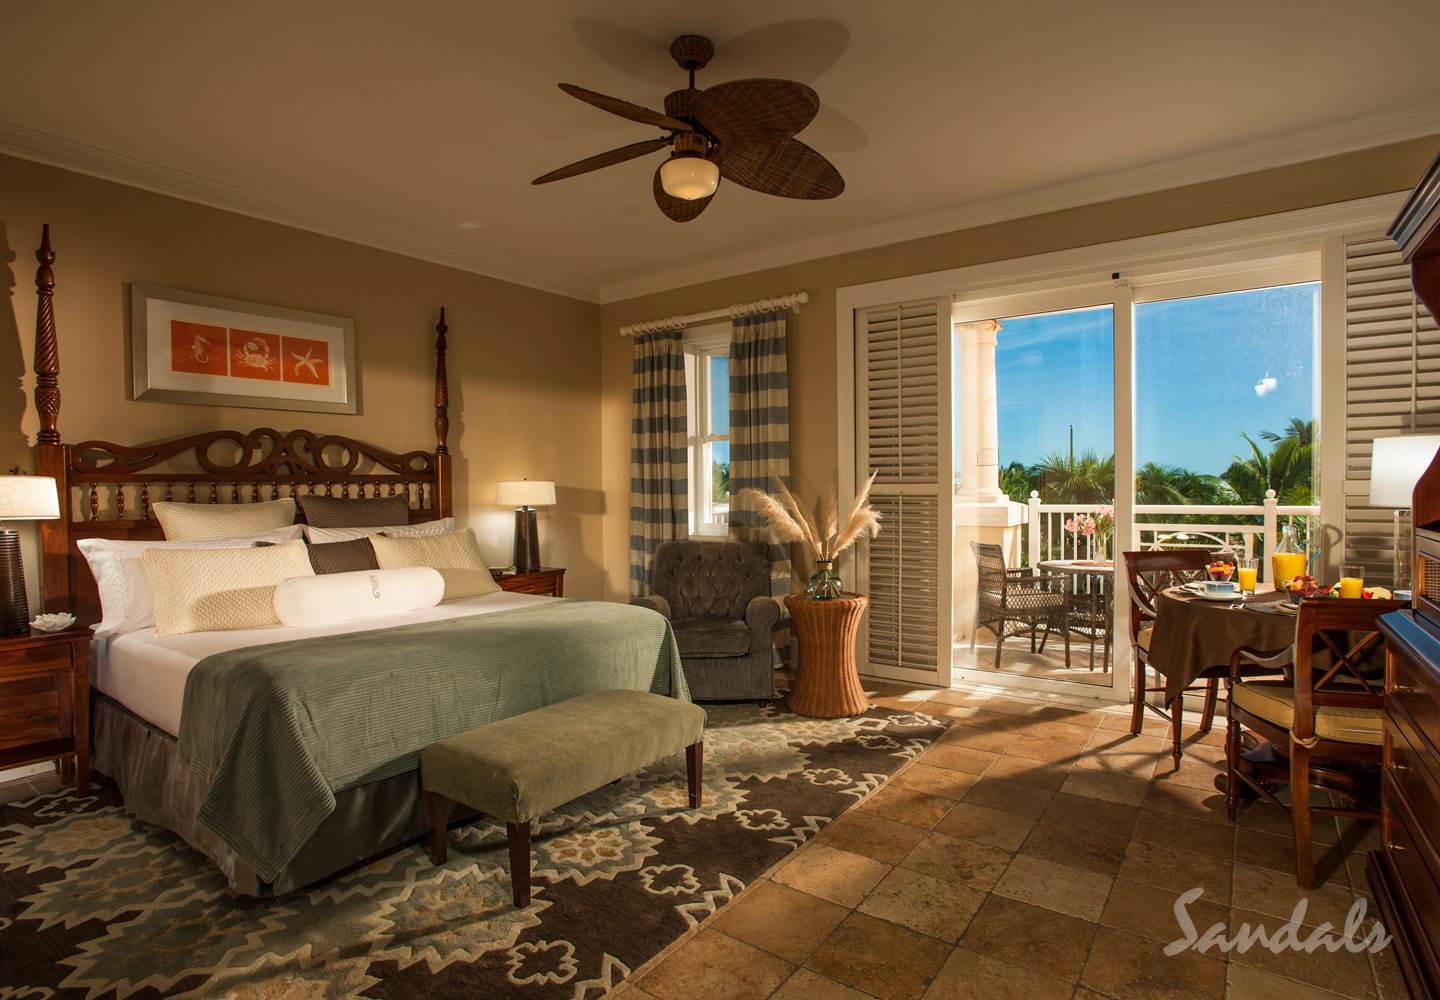 Travel Agency All-Inclusive Resort Sandals Emerald Bay 080